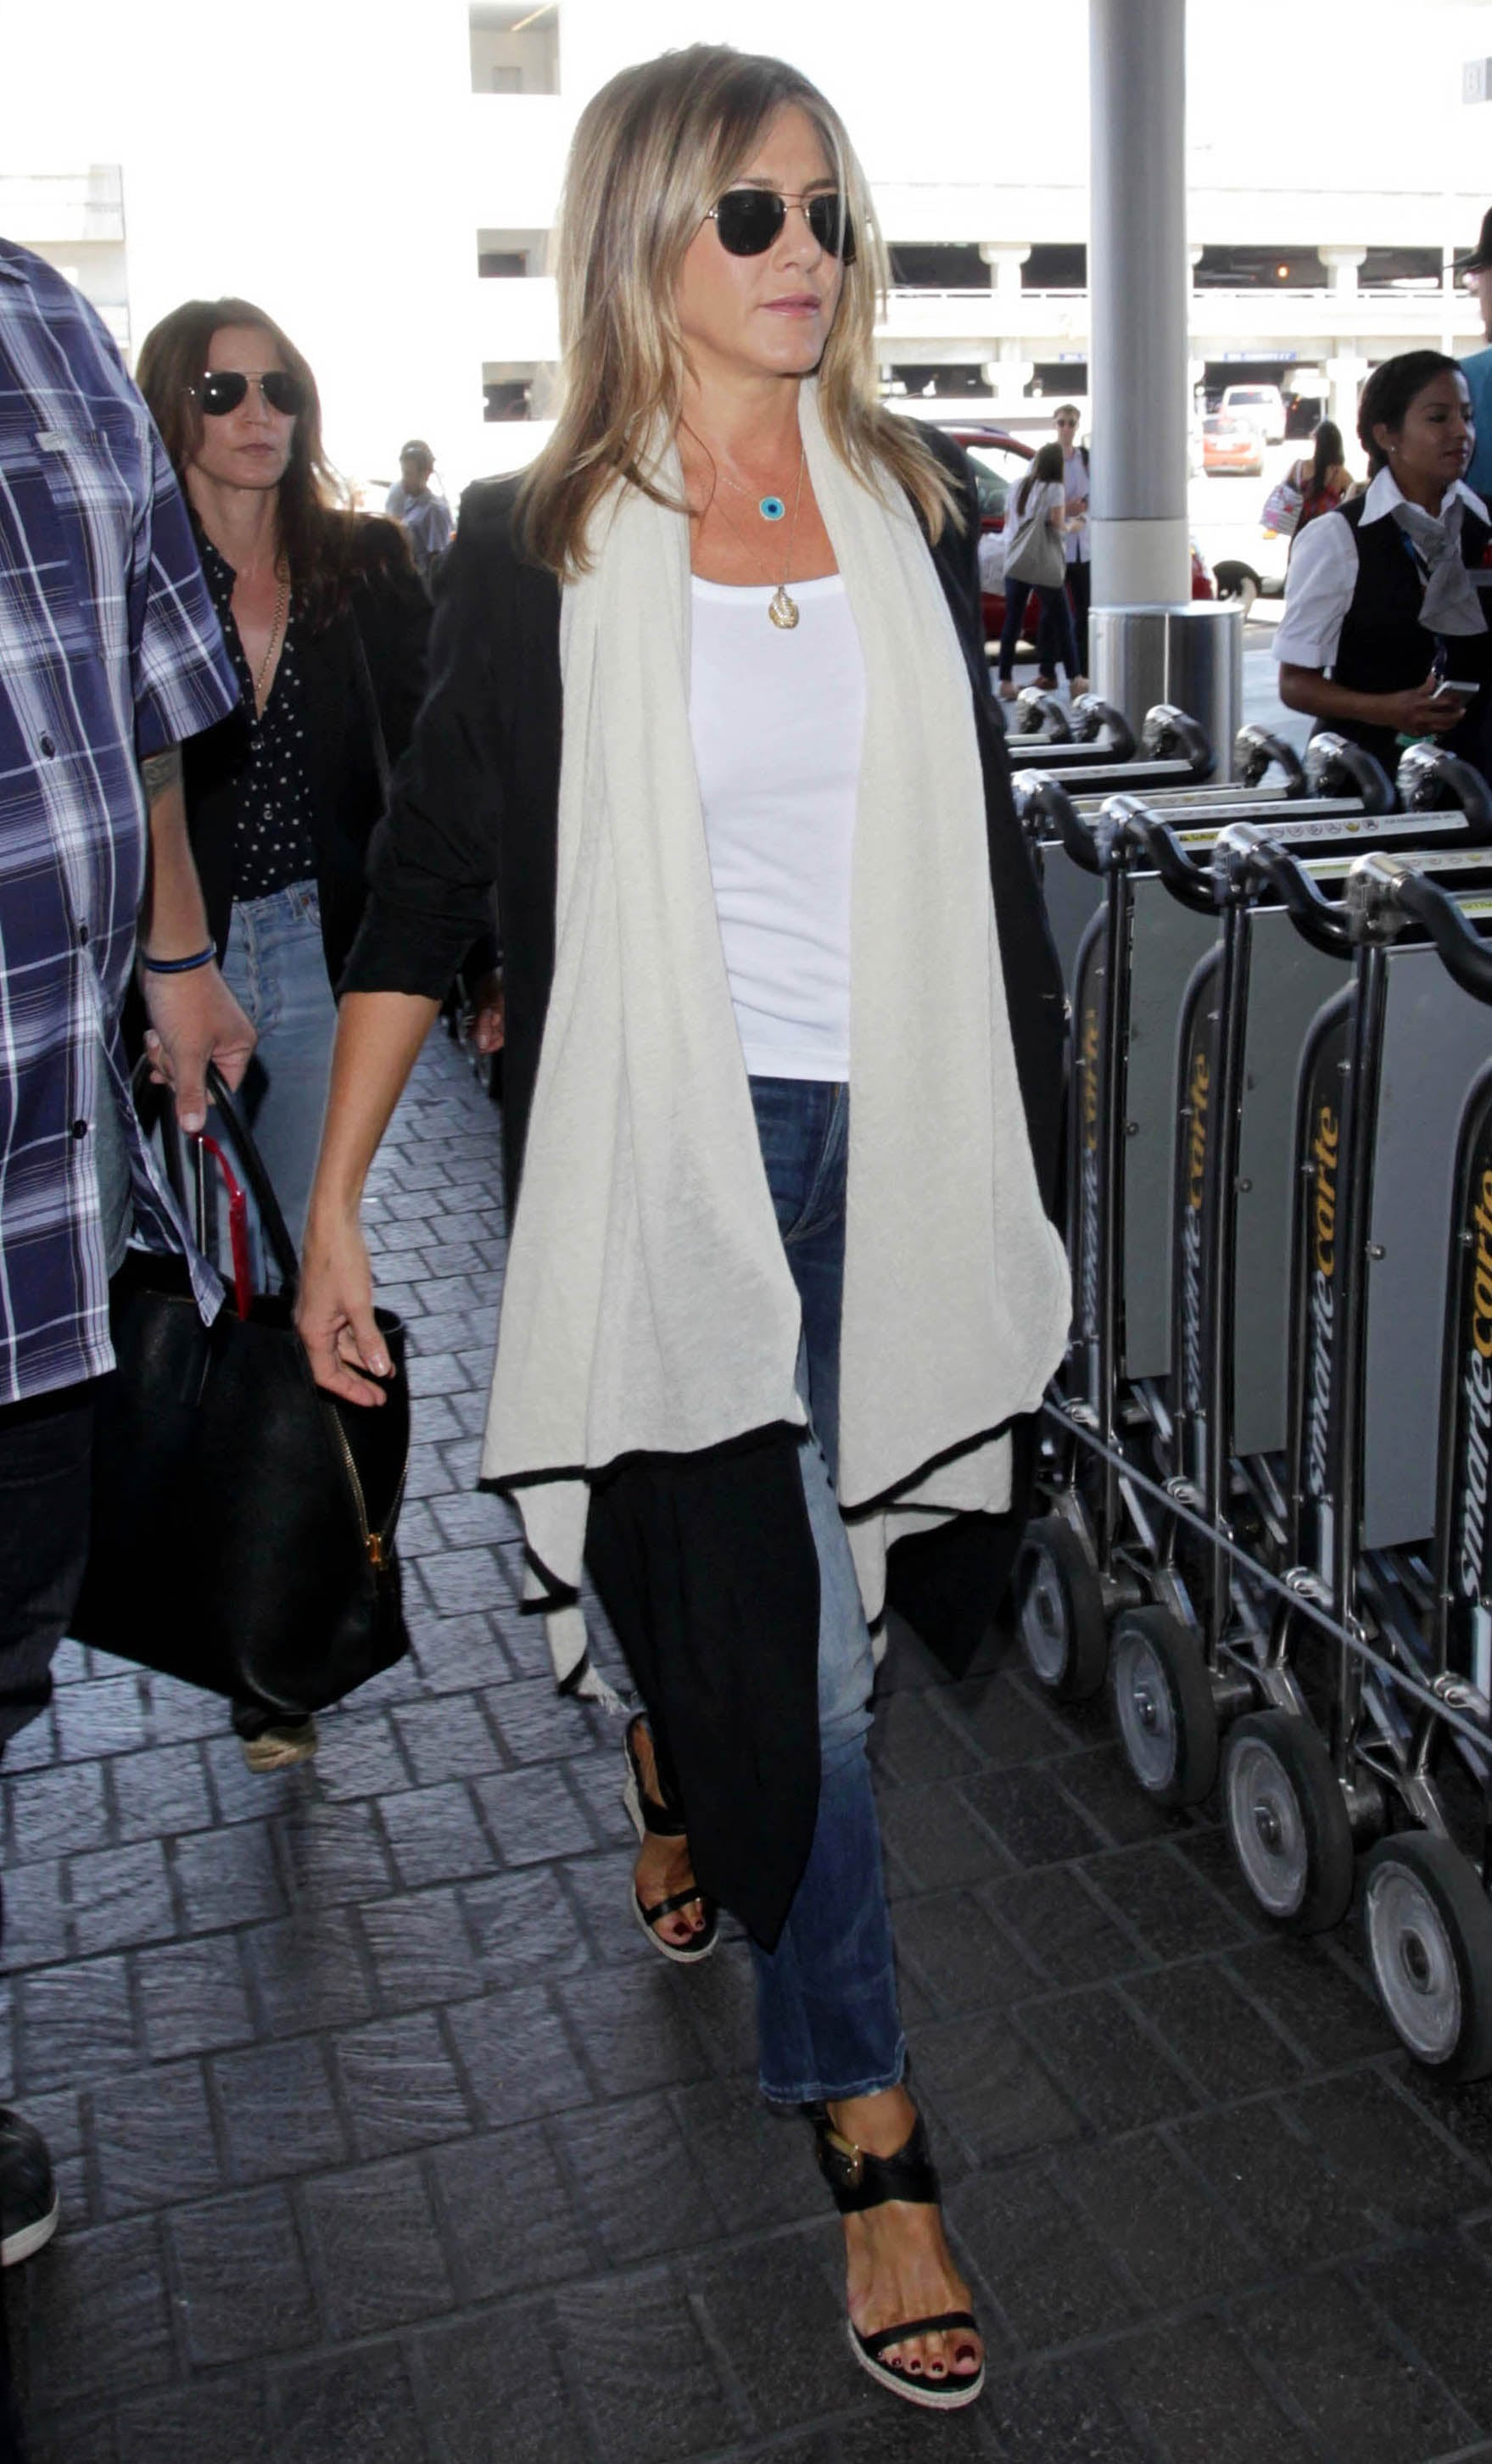 Fashion Shopping Style When Jennifer Aniston Wears This Outfit You Know She 39 S About To